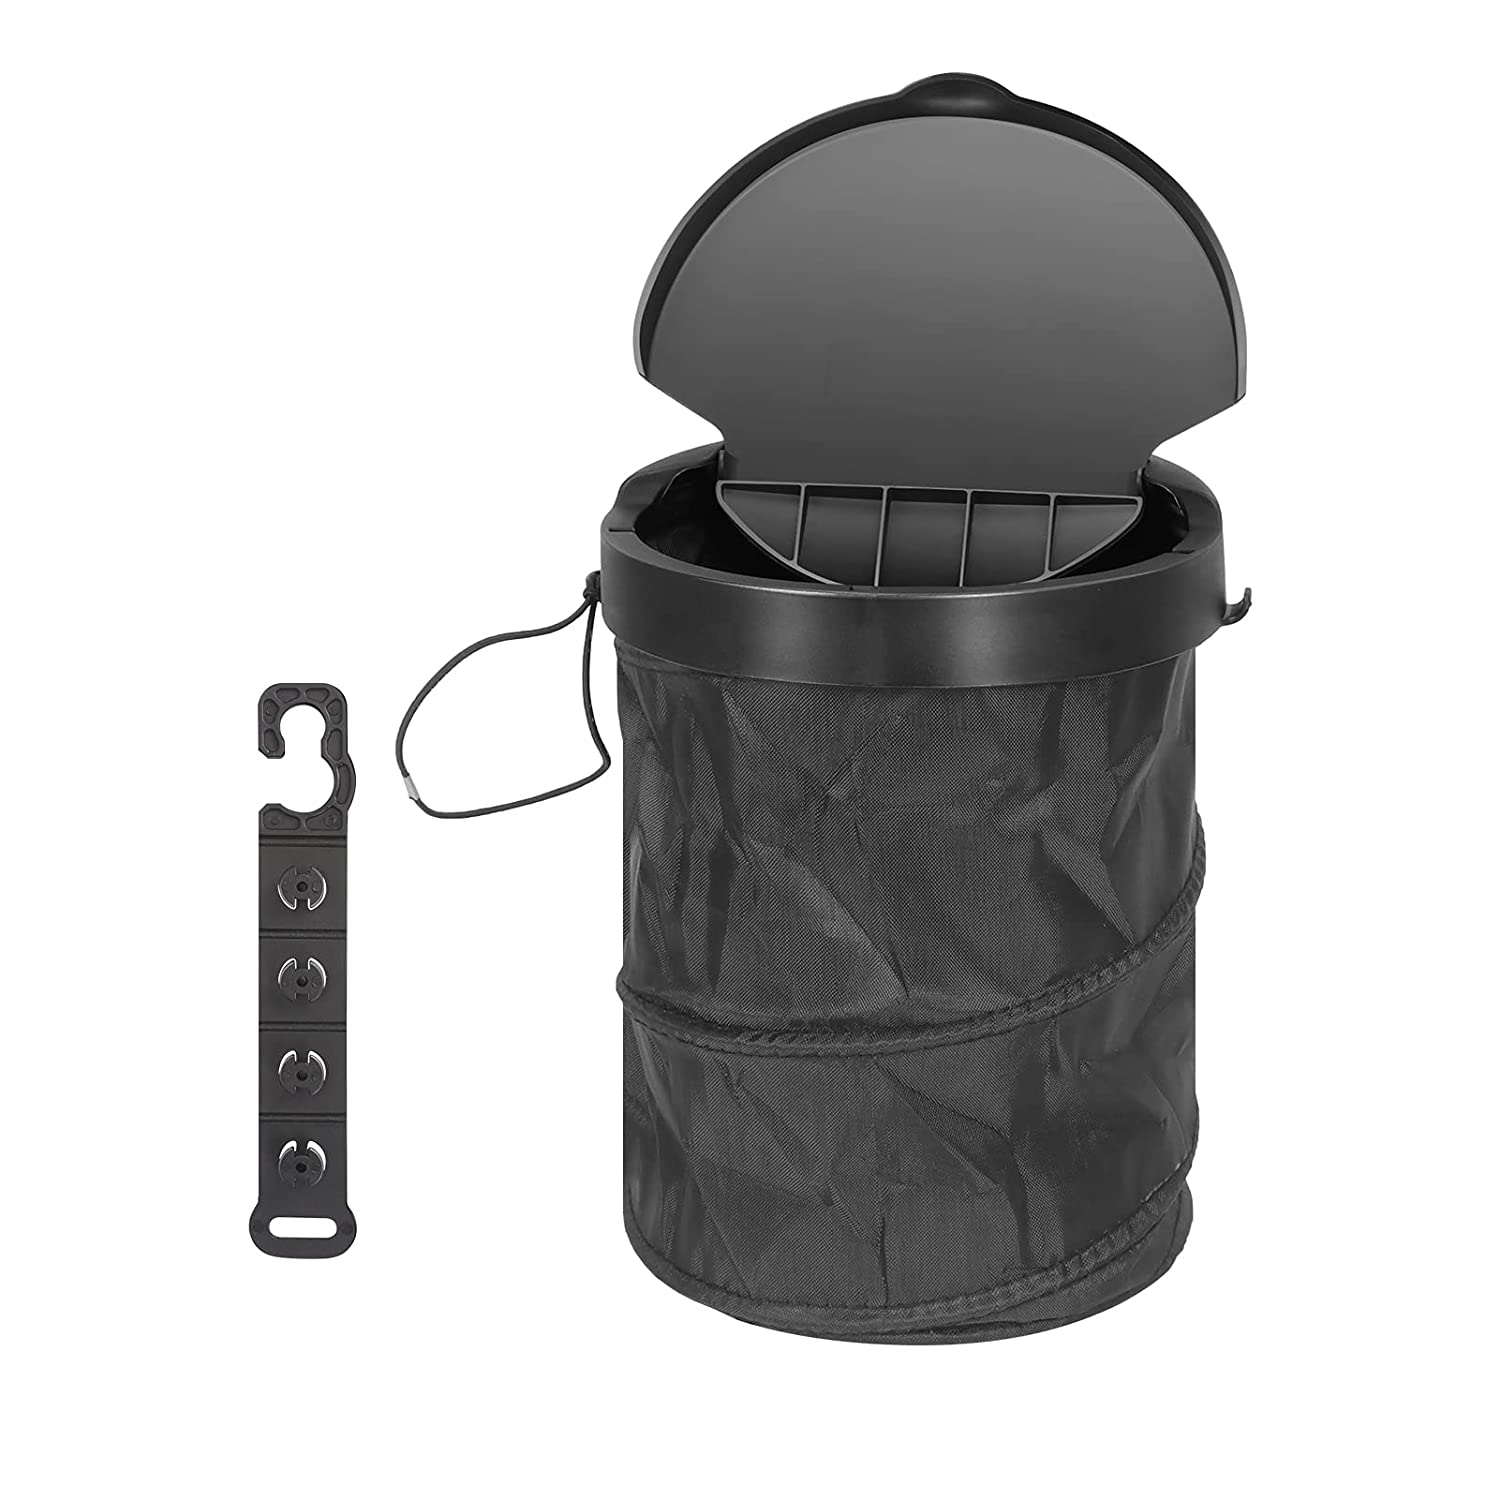 FYY Car Trash Can with Lid Le Tampa Mall Daily bargain sale Bin Up Pop Collapsible